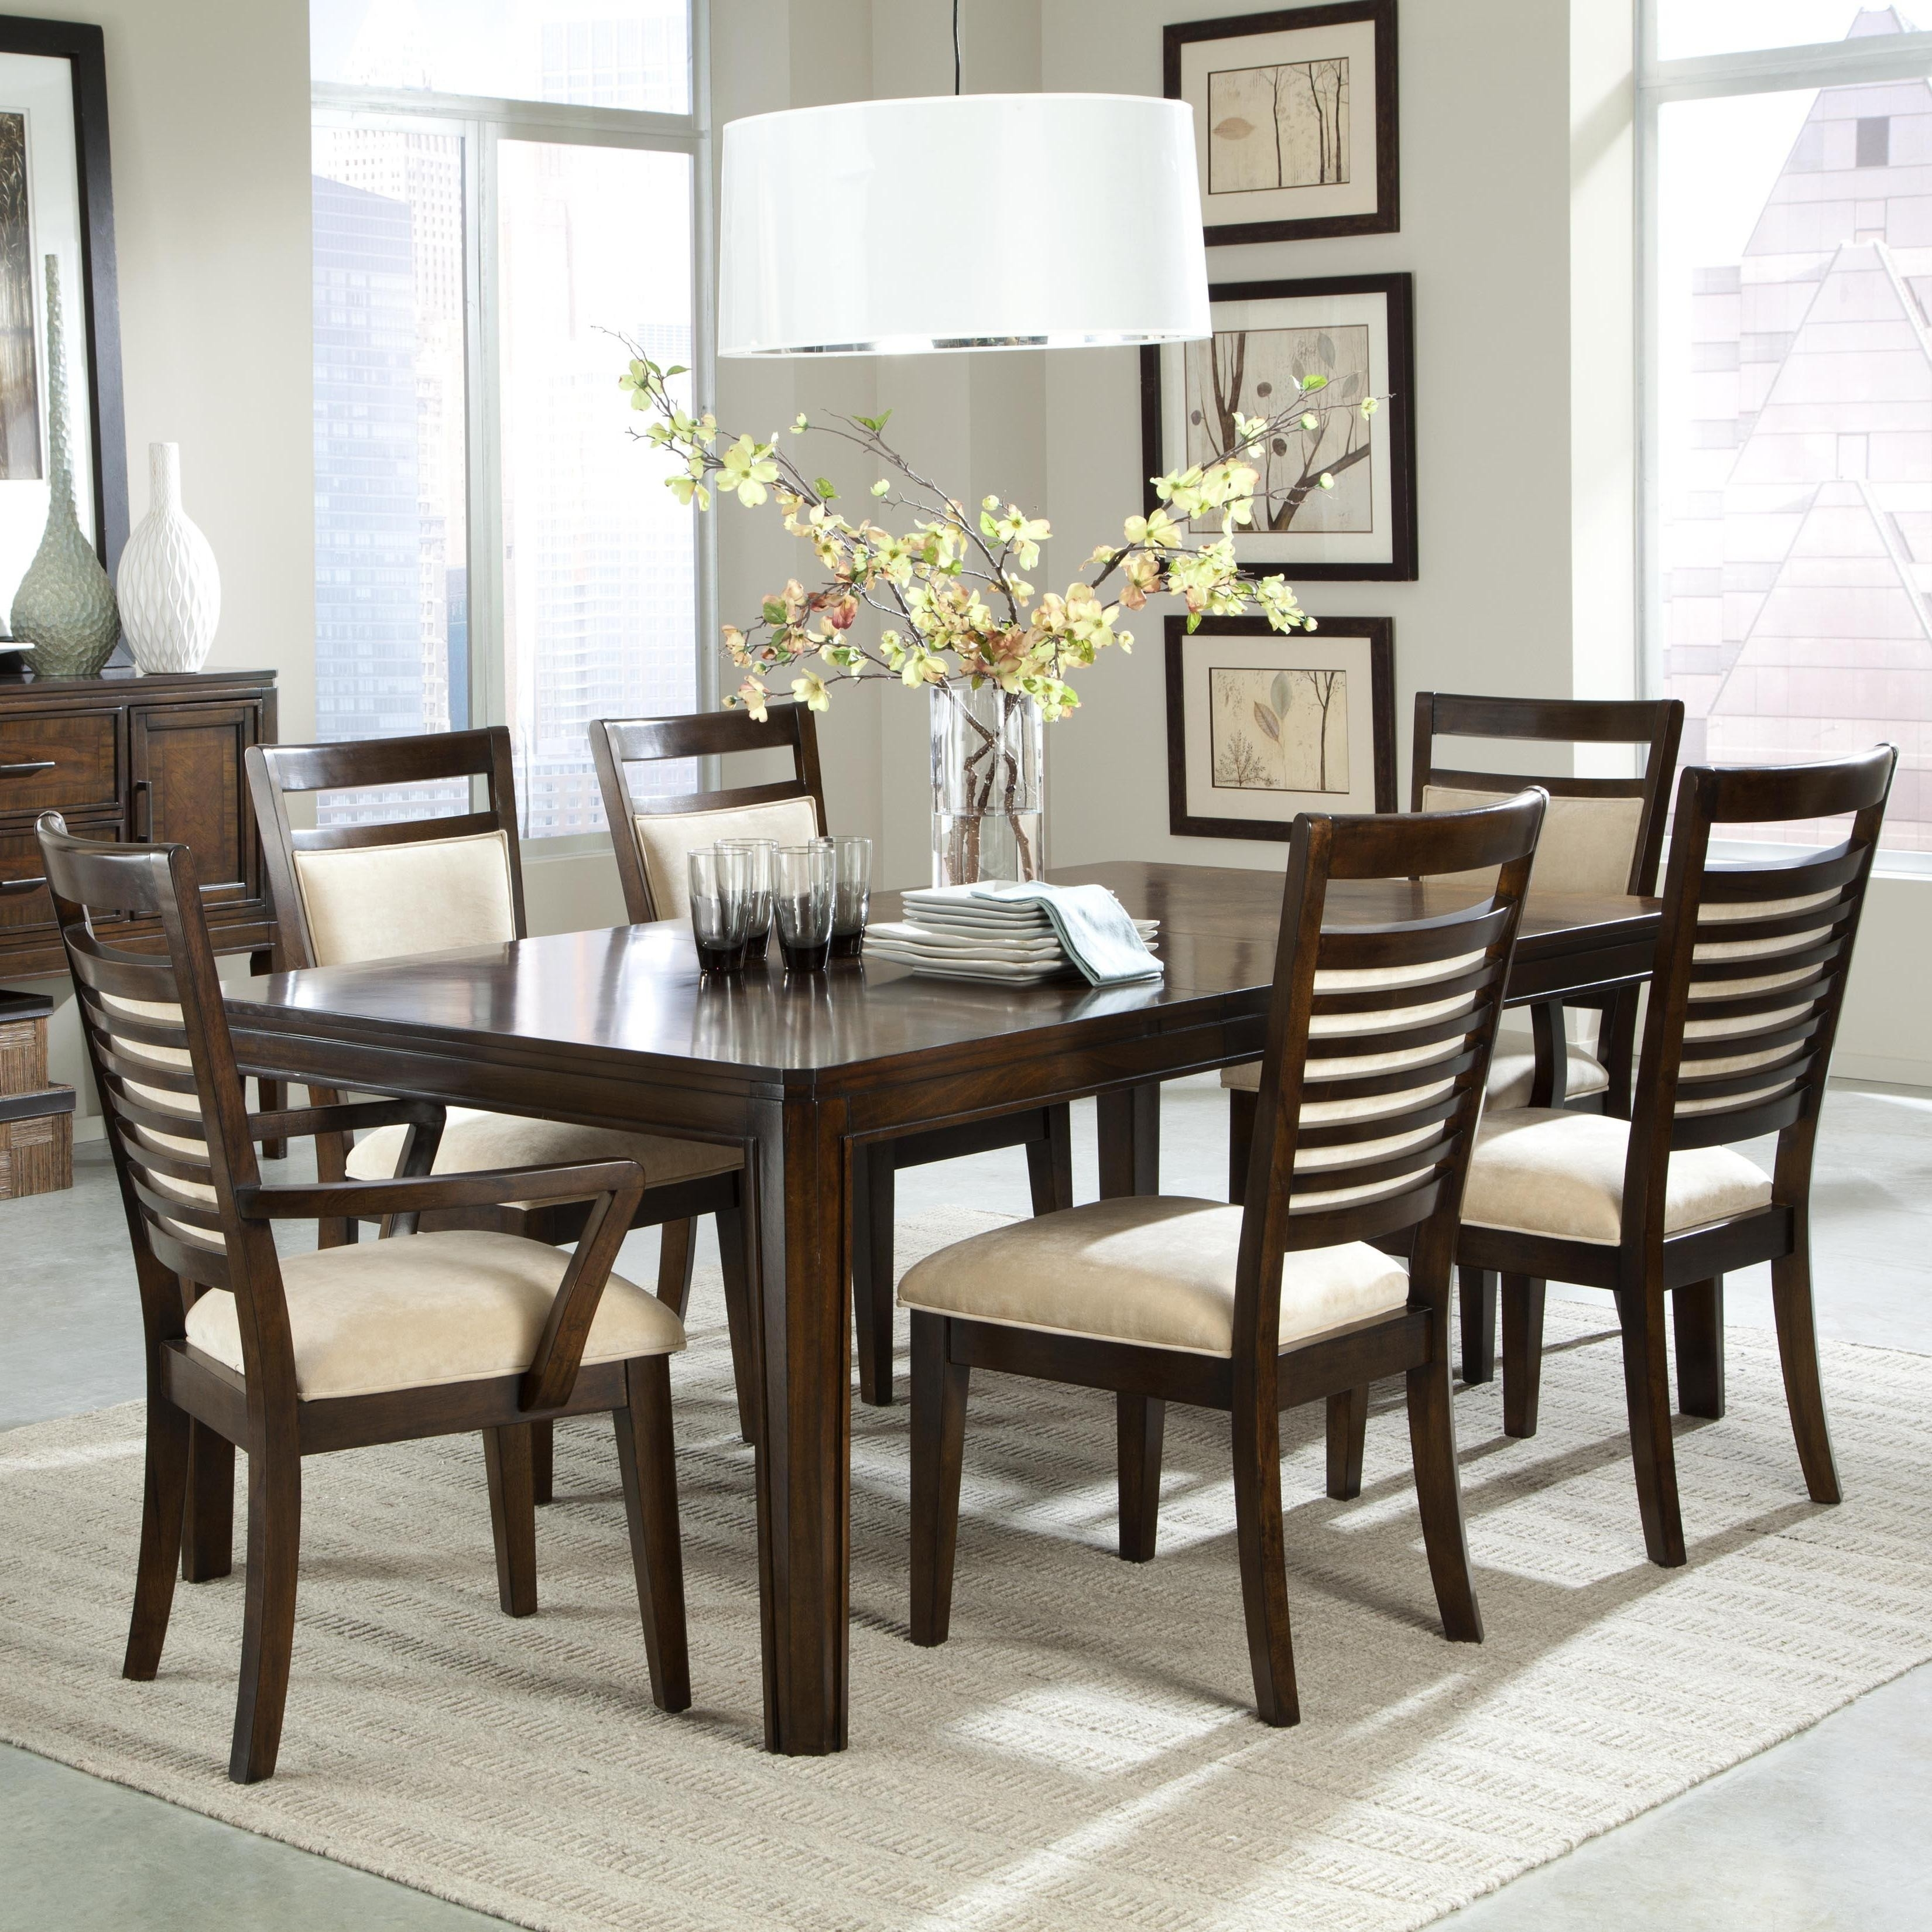 Dining Table Upholstered Chairs Unique The Pemberleigh Round Table Intended For Most Up To Date Jaxon Grey 7 Piece Rectangle Extension Dining Sets With Uph Chairs (Photo 18 of 20)